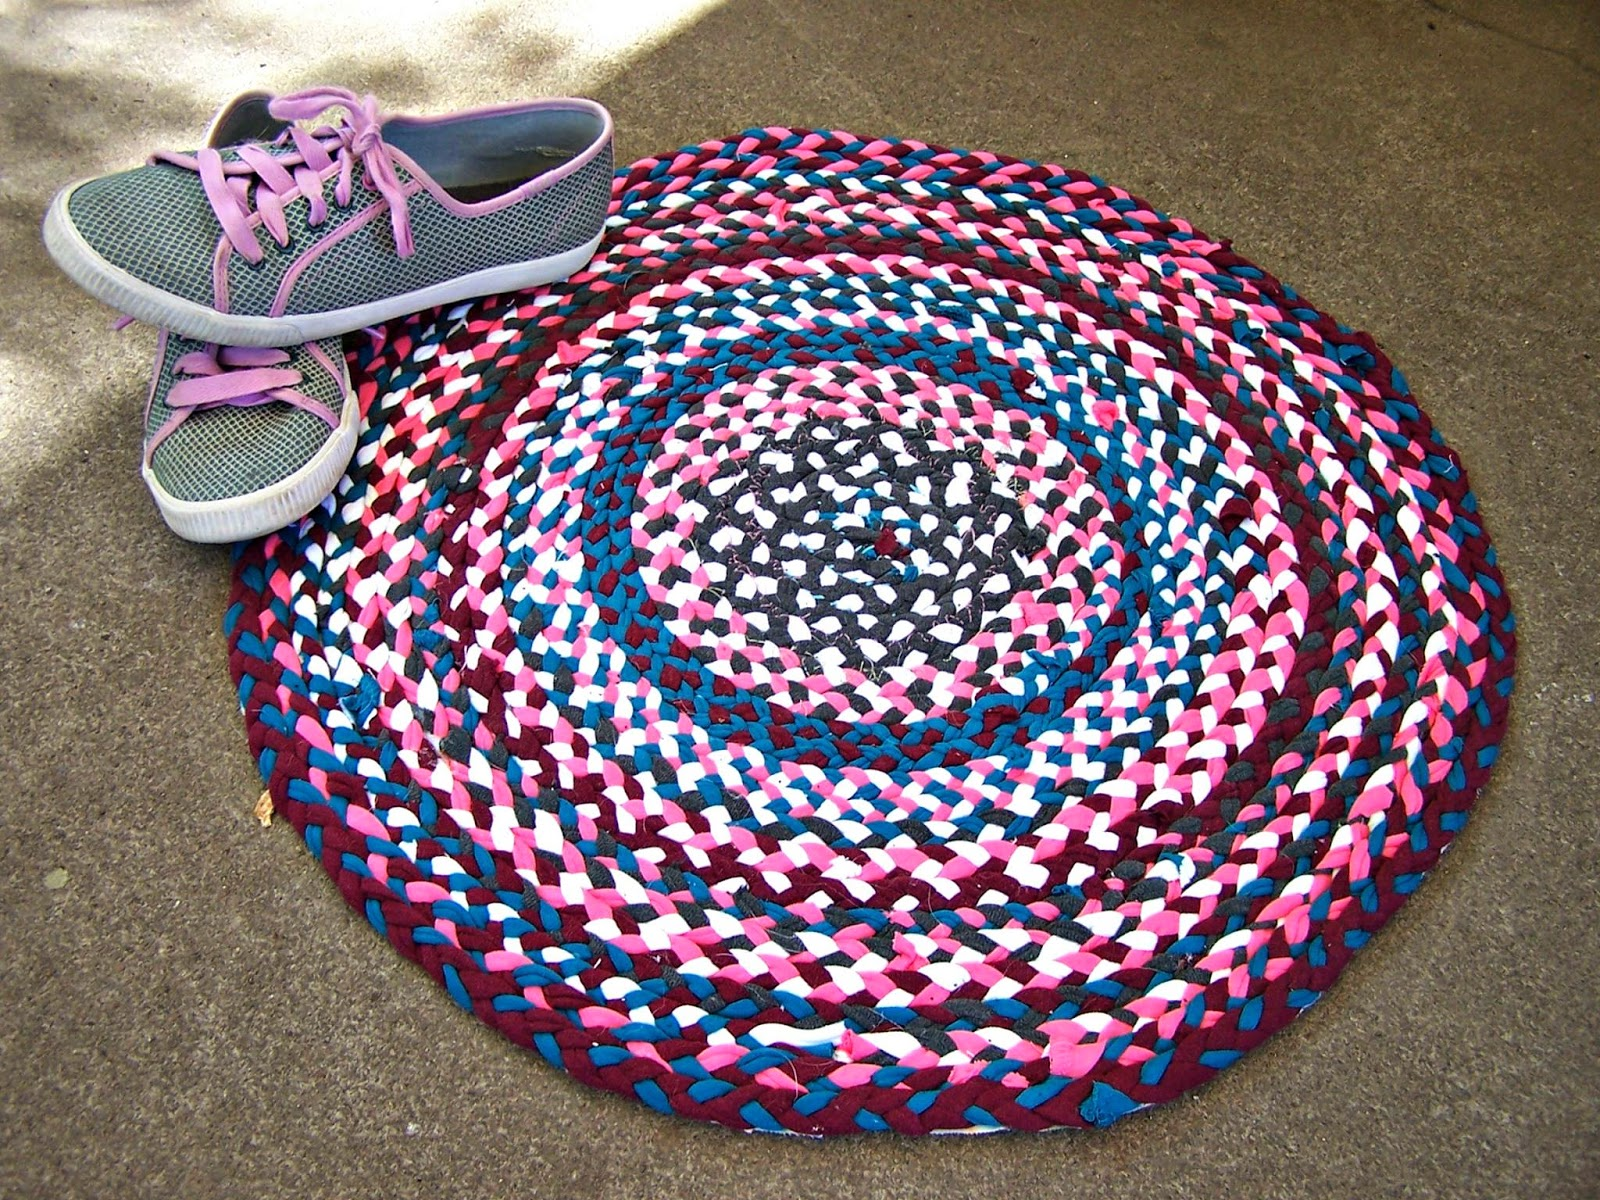 Braided Rugs Diy